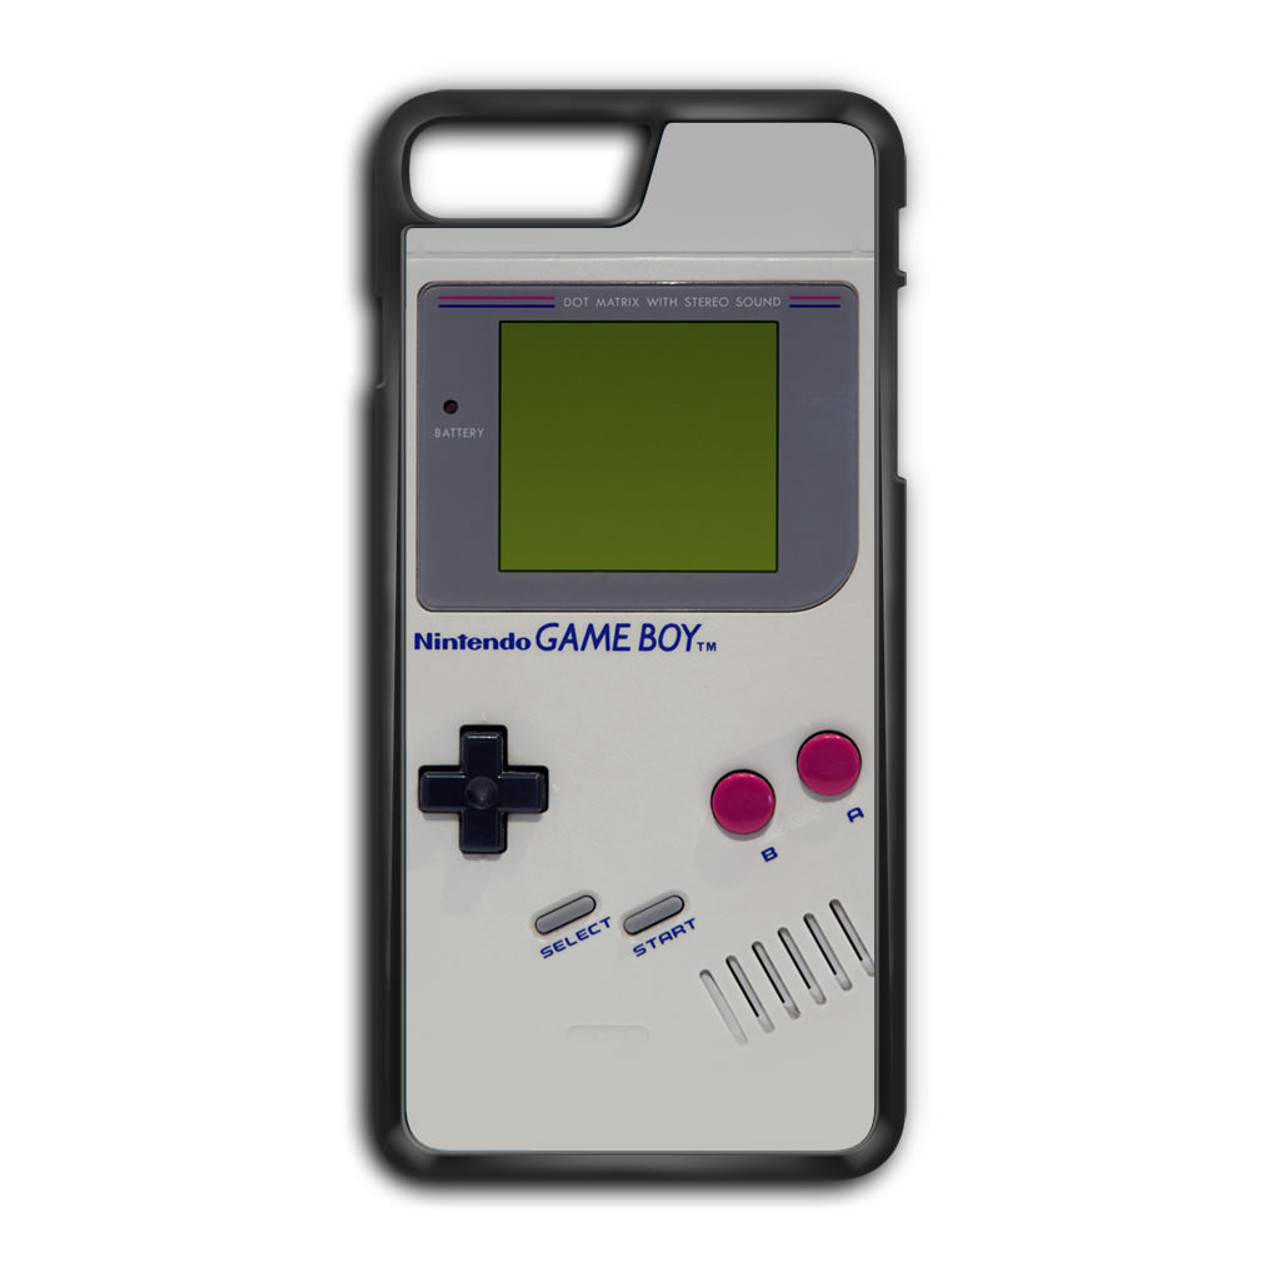 new concept c970b 546c6 Retro Gameboy Nintendo iPhone 7 Plus Case